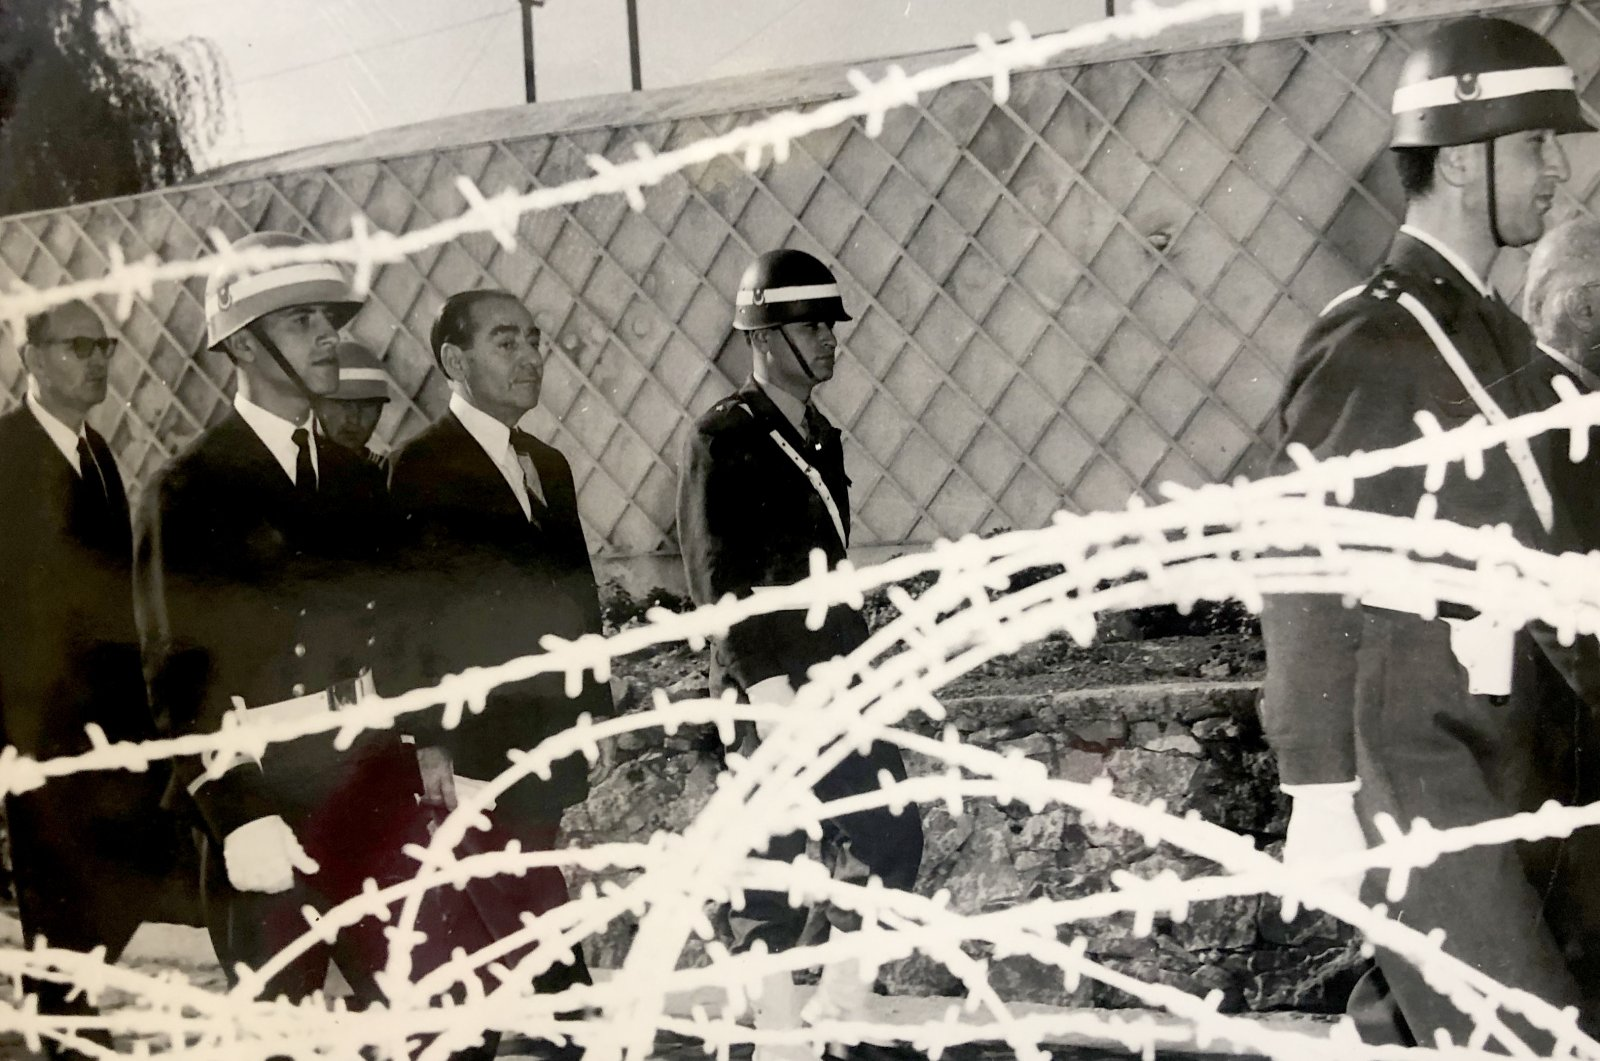 An archive photo showing then-Prime Minister Adnan Menderes behind fences accompanied by coup soldiers on Yassıada Island, Istanbul, Turkey, May 1960. (AA Photo)